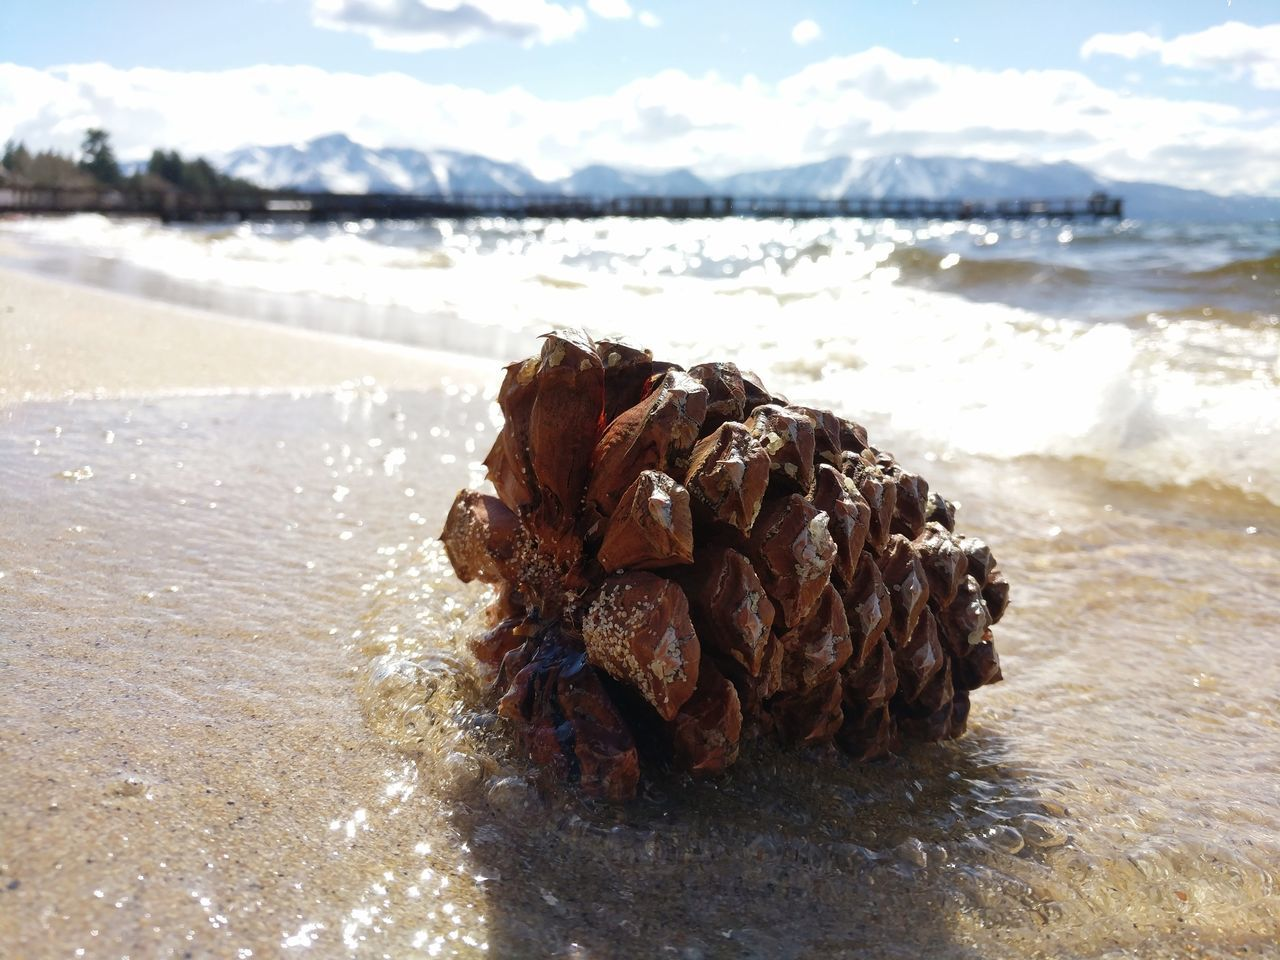 Beach Nature Pine Cone Macro Waves Wave Sand Tide Lake Mountains And Beach Beauty In Nature Close-up Day Outdoors Water Cloud - Sky Sierra Nevada Mountains Travel Tranquillity California